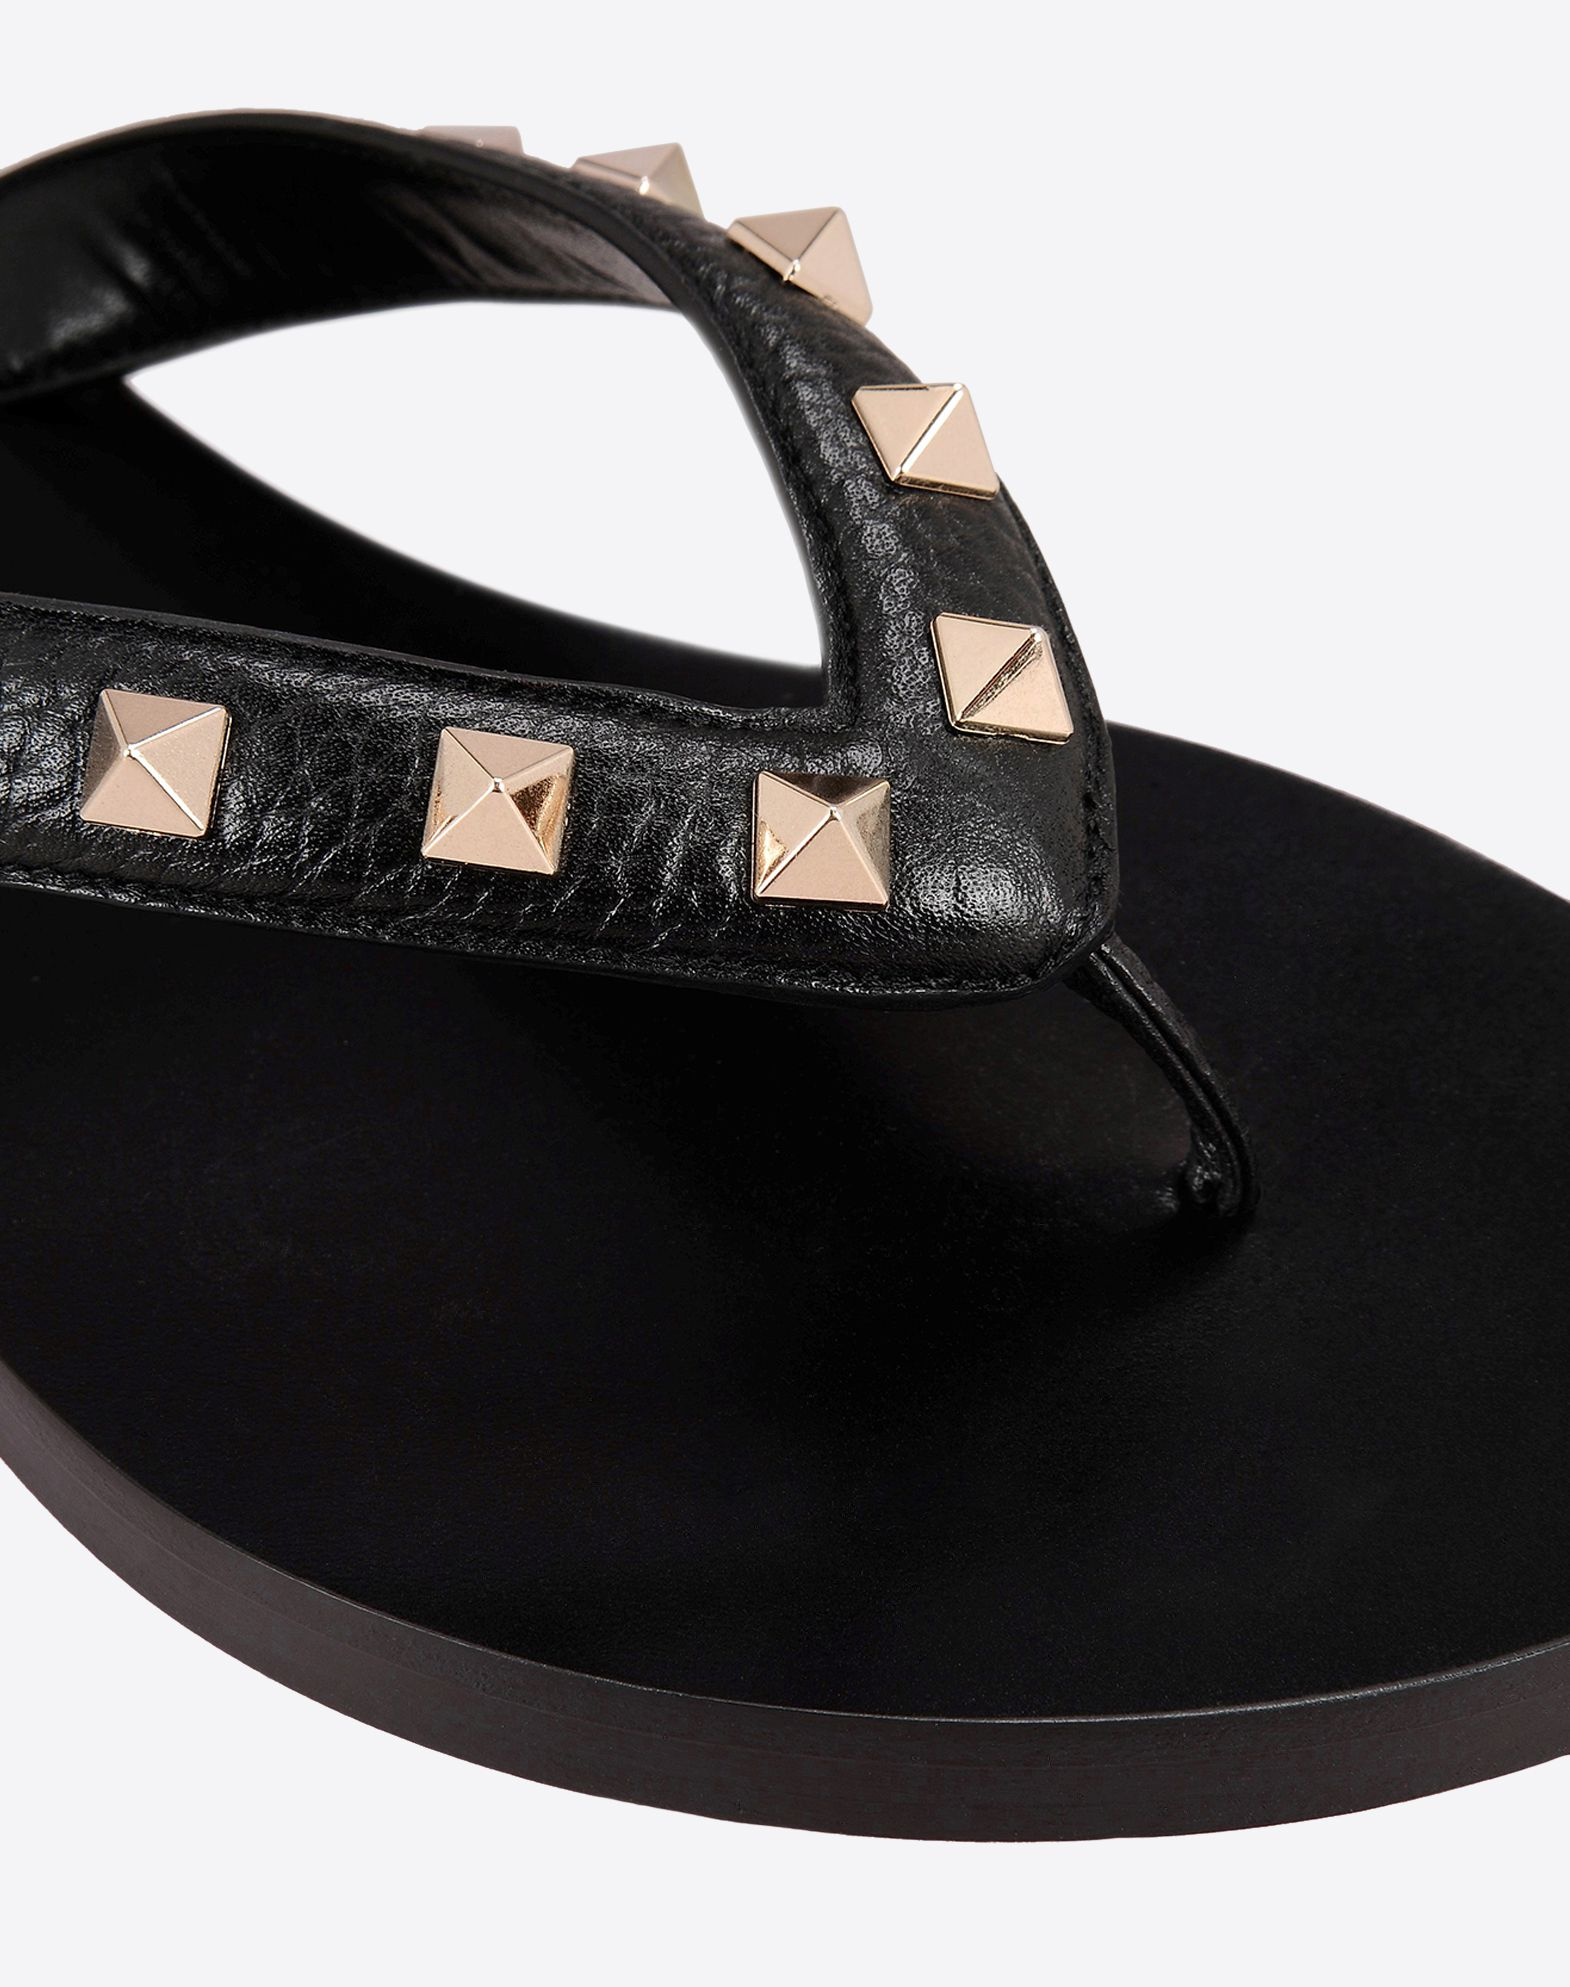 valentino rockstud leather flip flops in black lyst. Black Bedroom Furniture Sets. Home Design Ideas